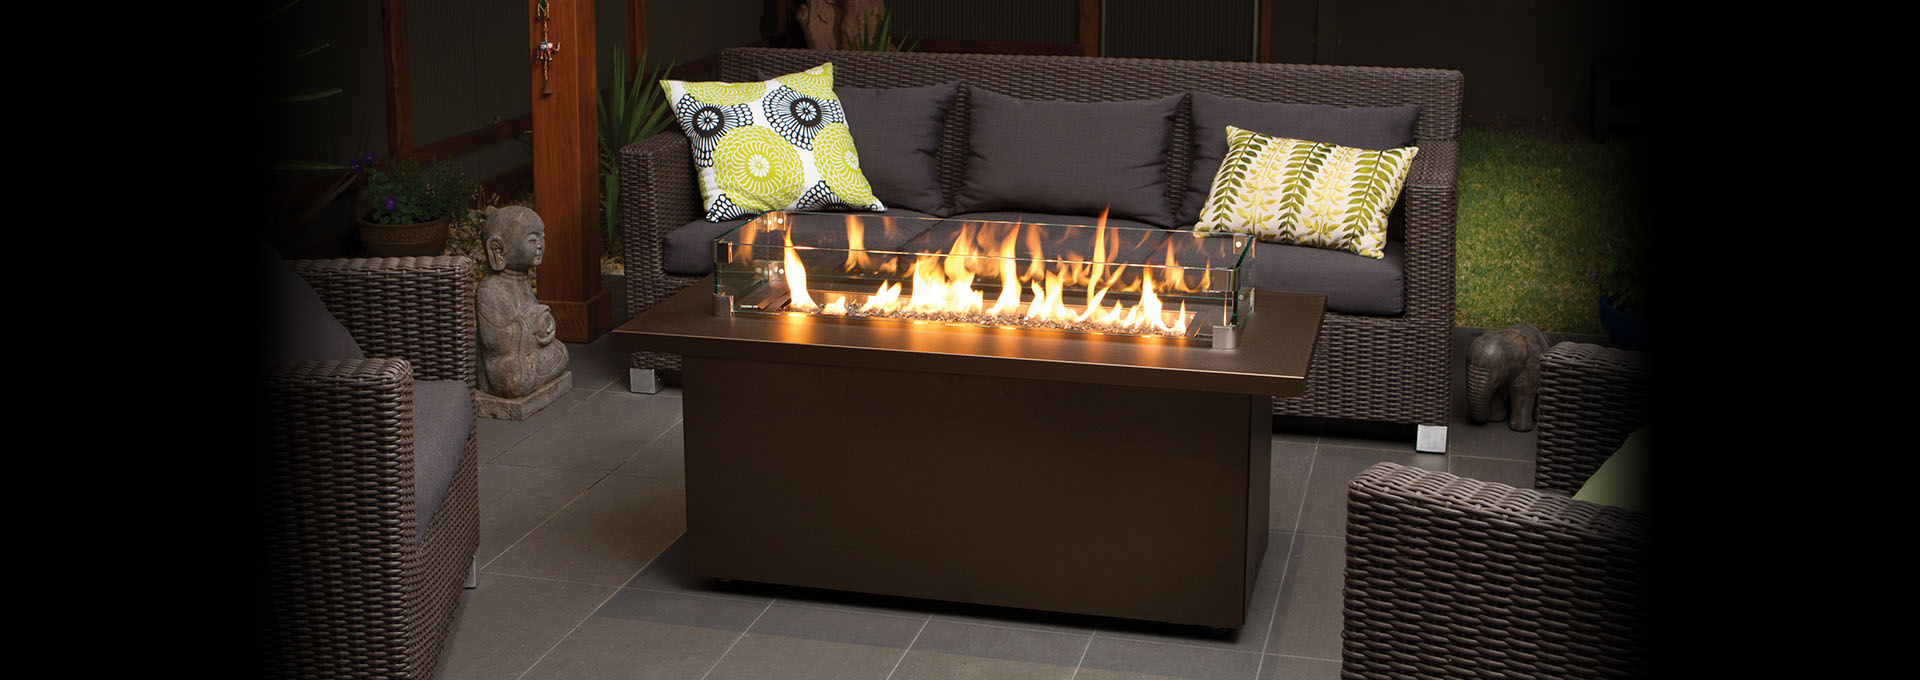 Regency Plateau Outdoor Firetable Product Video